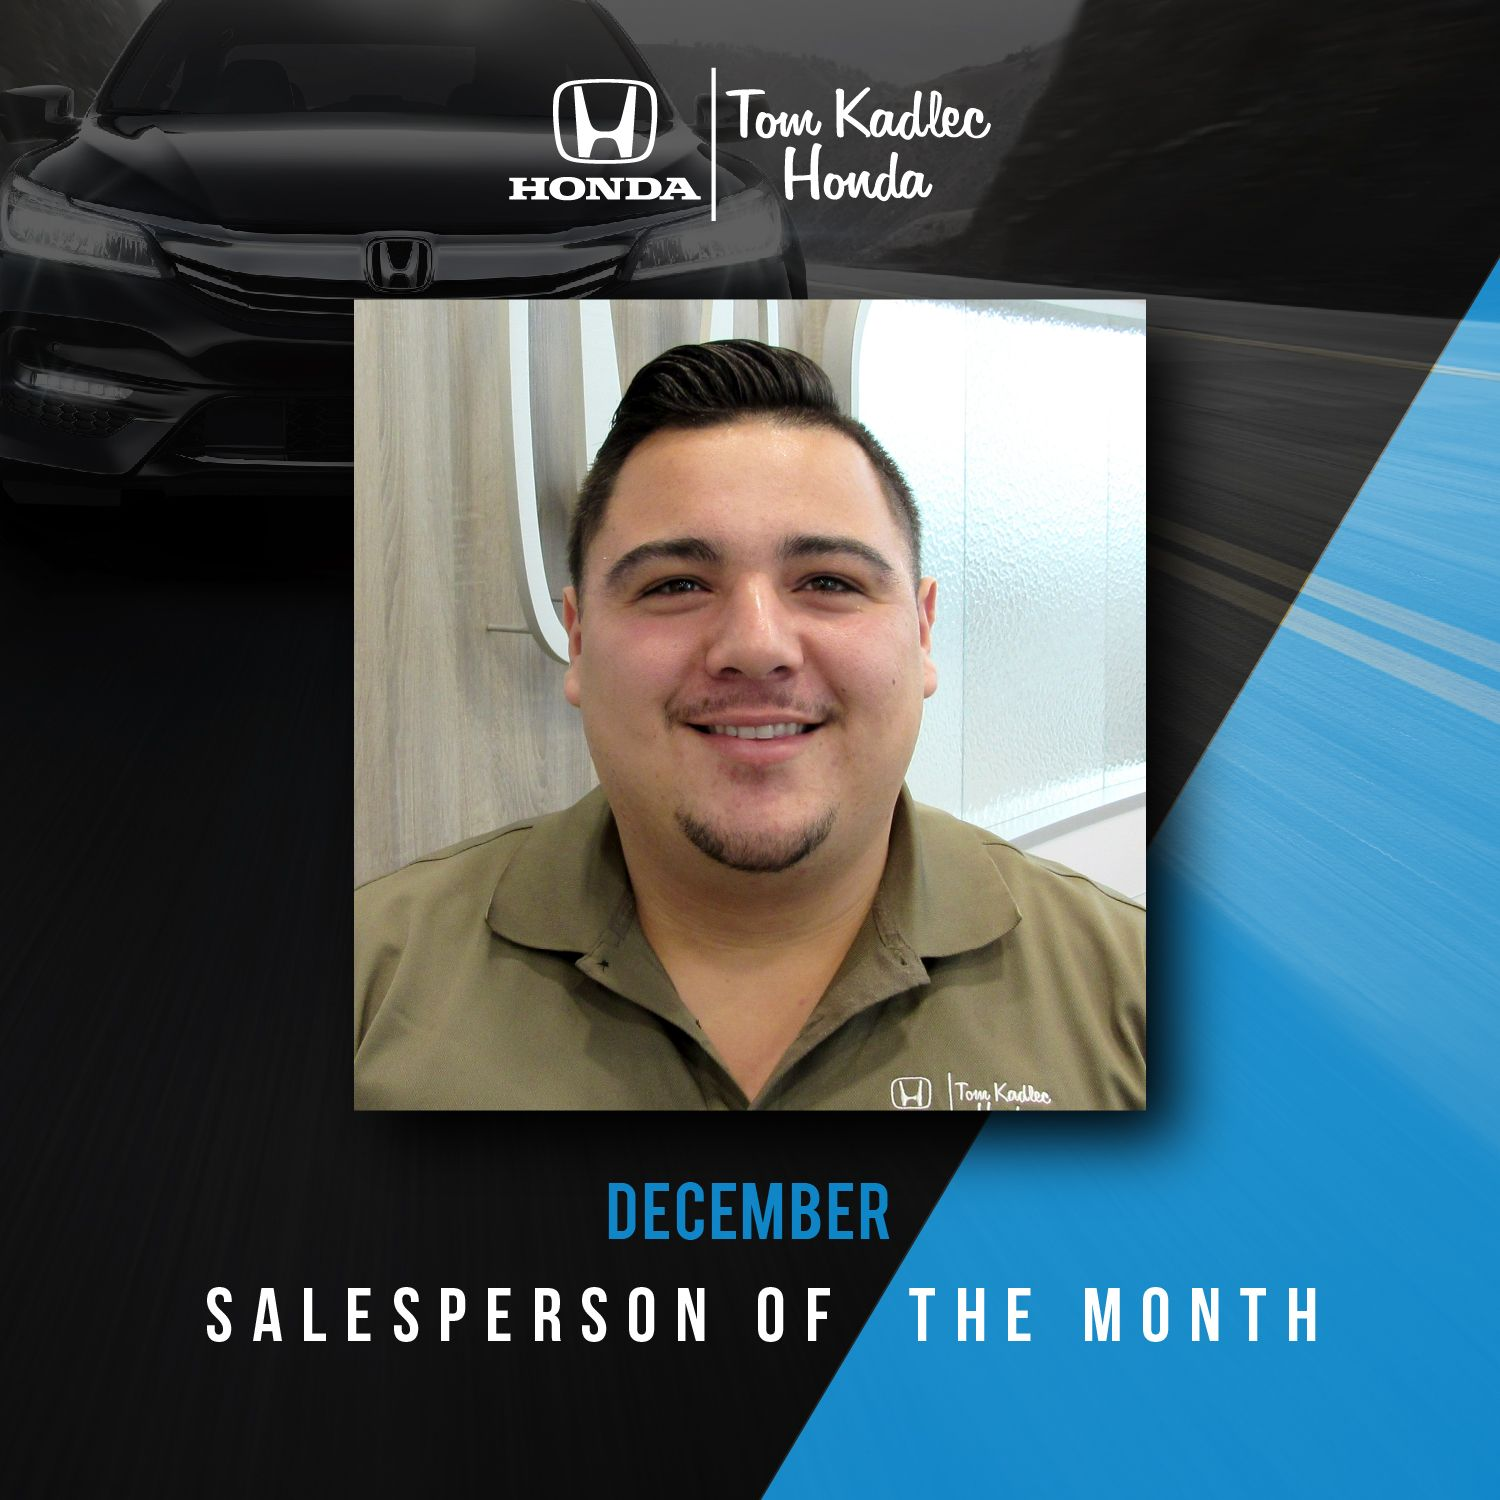 All of us at Tom Kadlec Honda would like to congratulate